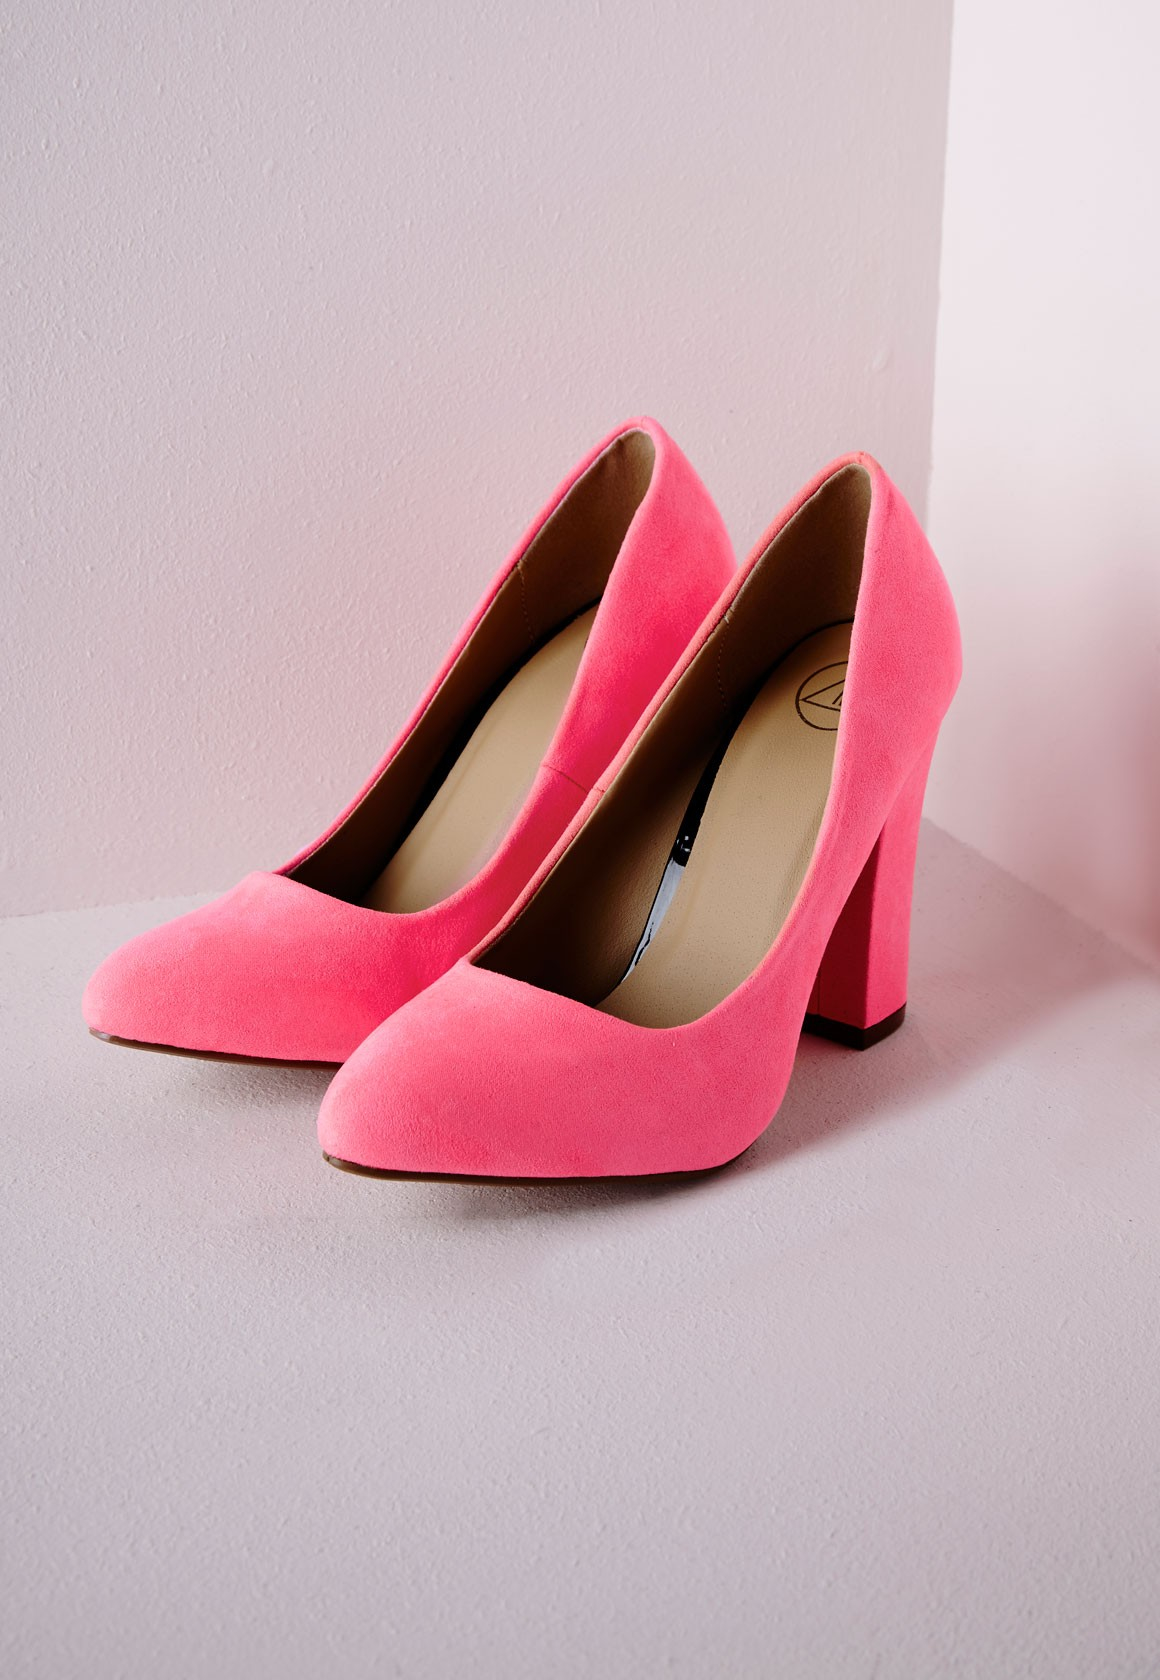 Lyst - Missguided Block Heel Court Shoes Neon Pink in Pink